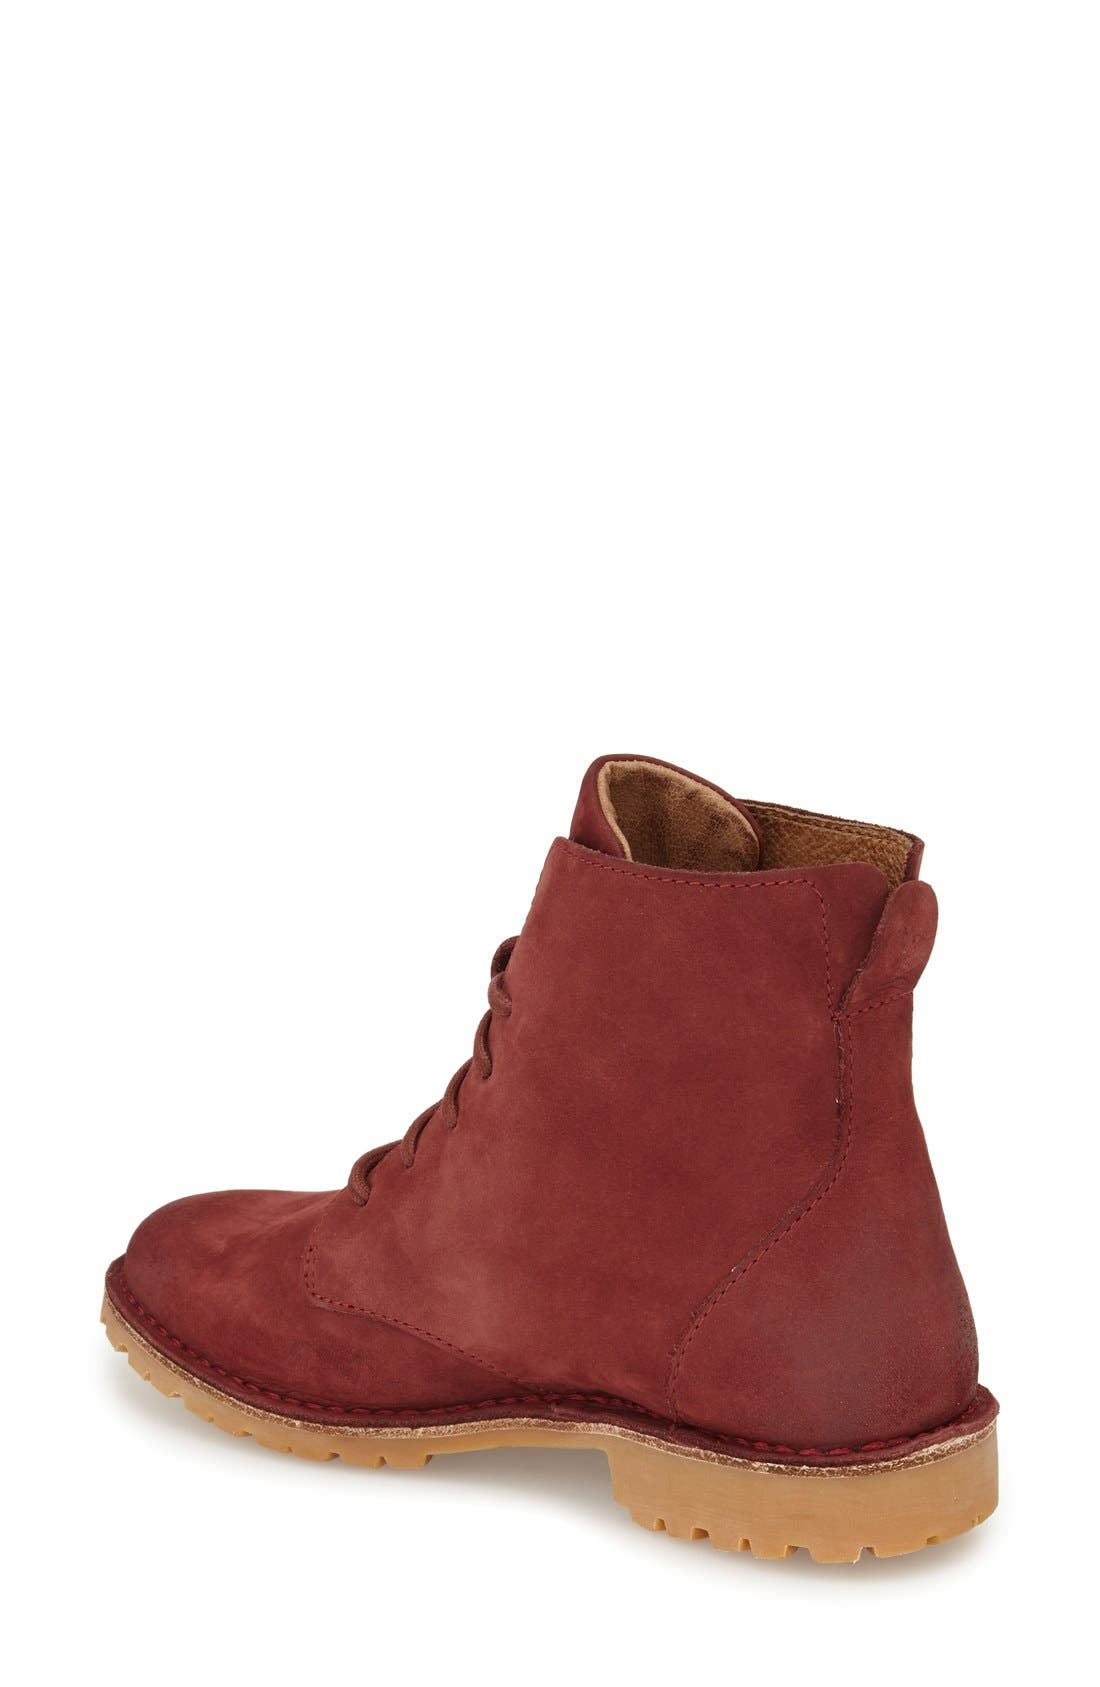 'KL67' Lace-Up Boot,                             Alternate thumbnail 2, color,                             Cordovan Nubuck Leather